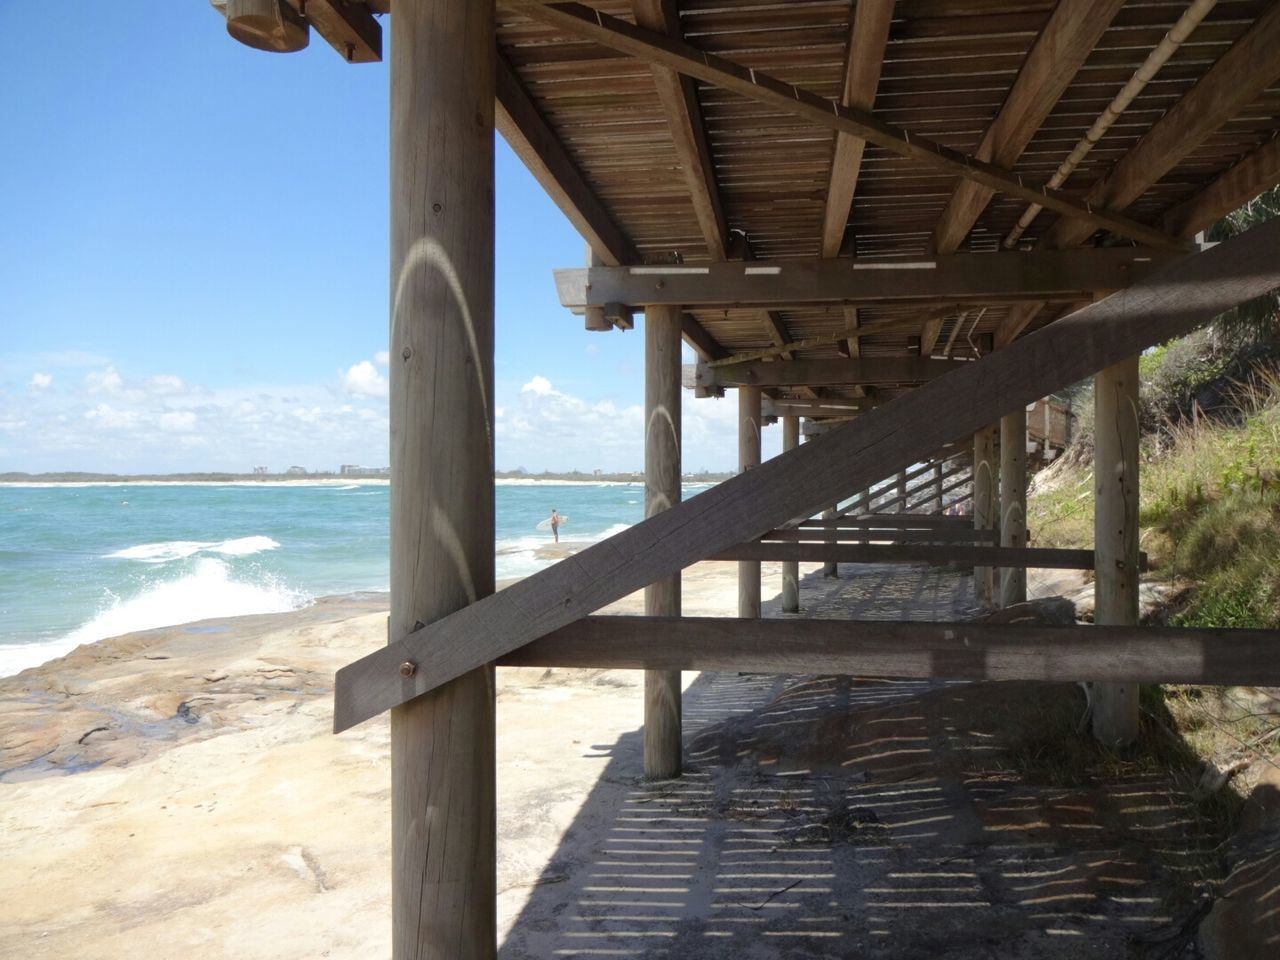 sea, beach, water, pier, wood - material, nature, day, horizon over water, sand, sunlight, sky, scenics, outdoors, underneath, the way forward, beauty in nature, no people